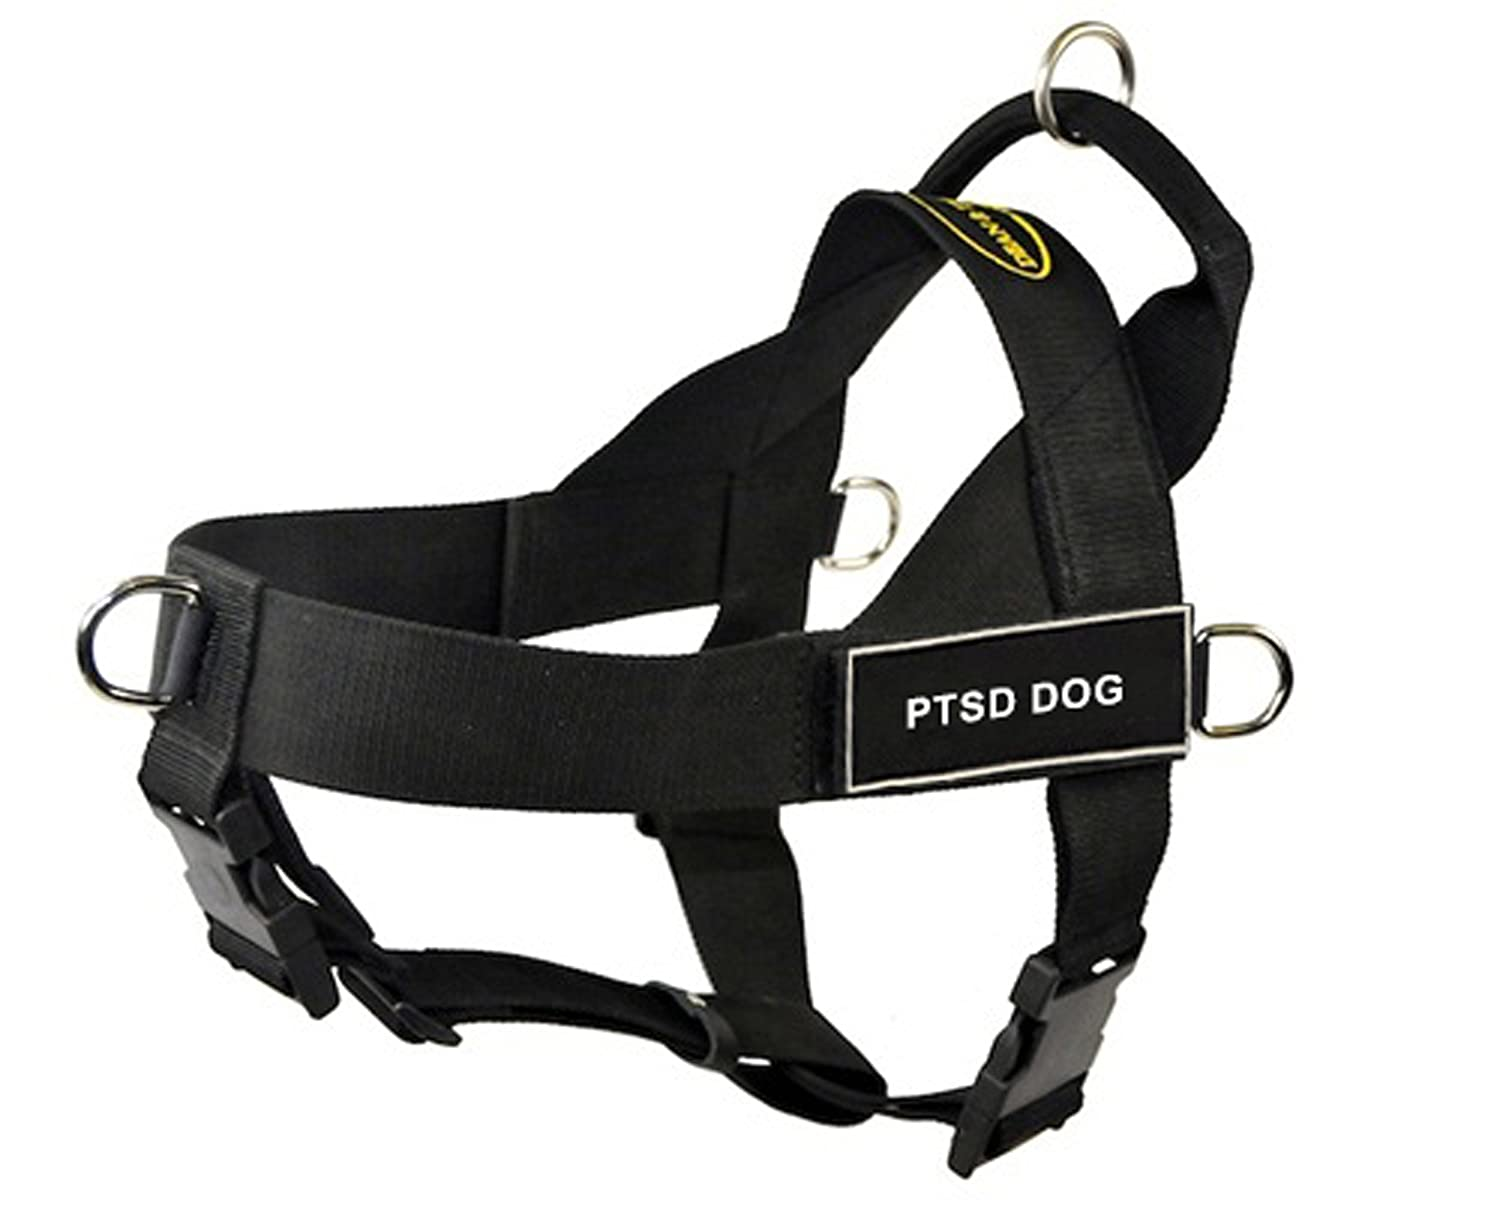 DT Universal No Pull Dog Harness, PTSD Dog, Black, Small, Fits Girth Size  24-Inch to 27-Inch